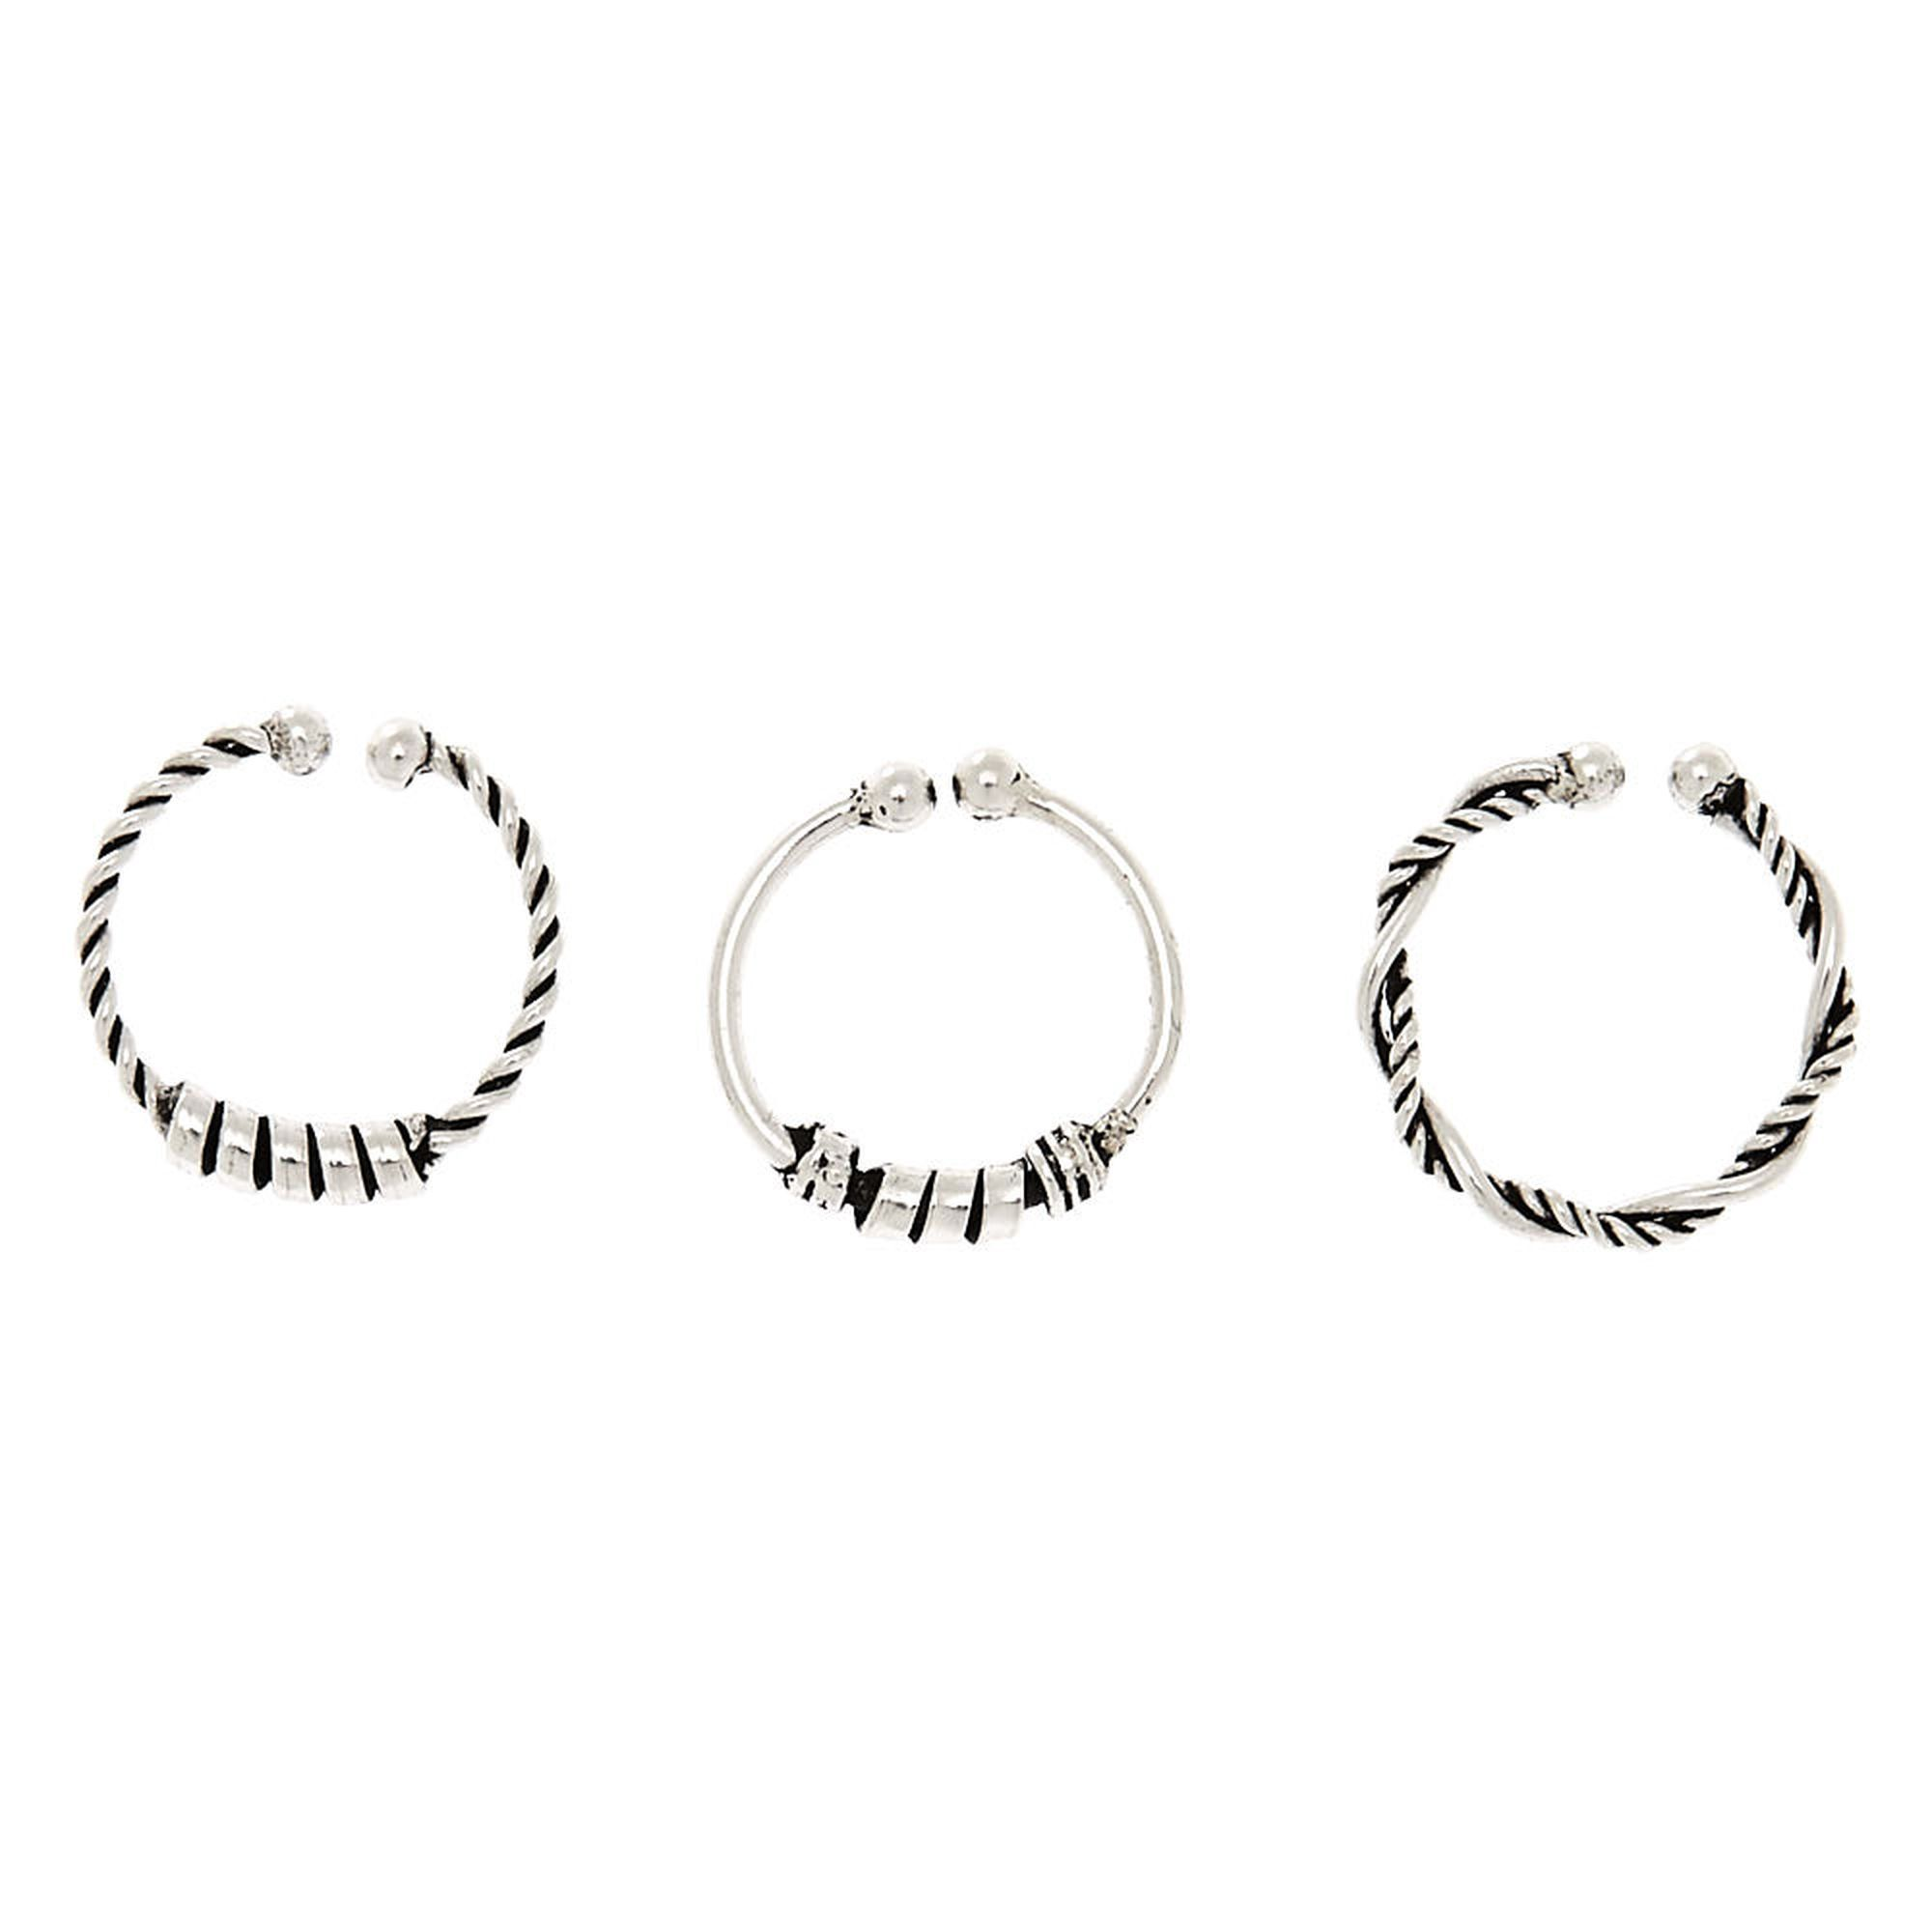 Claire S Sterling Silver Textured Faux Nose Rings 3 Pack In 2019